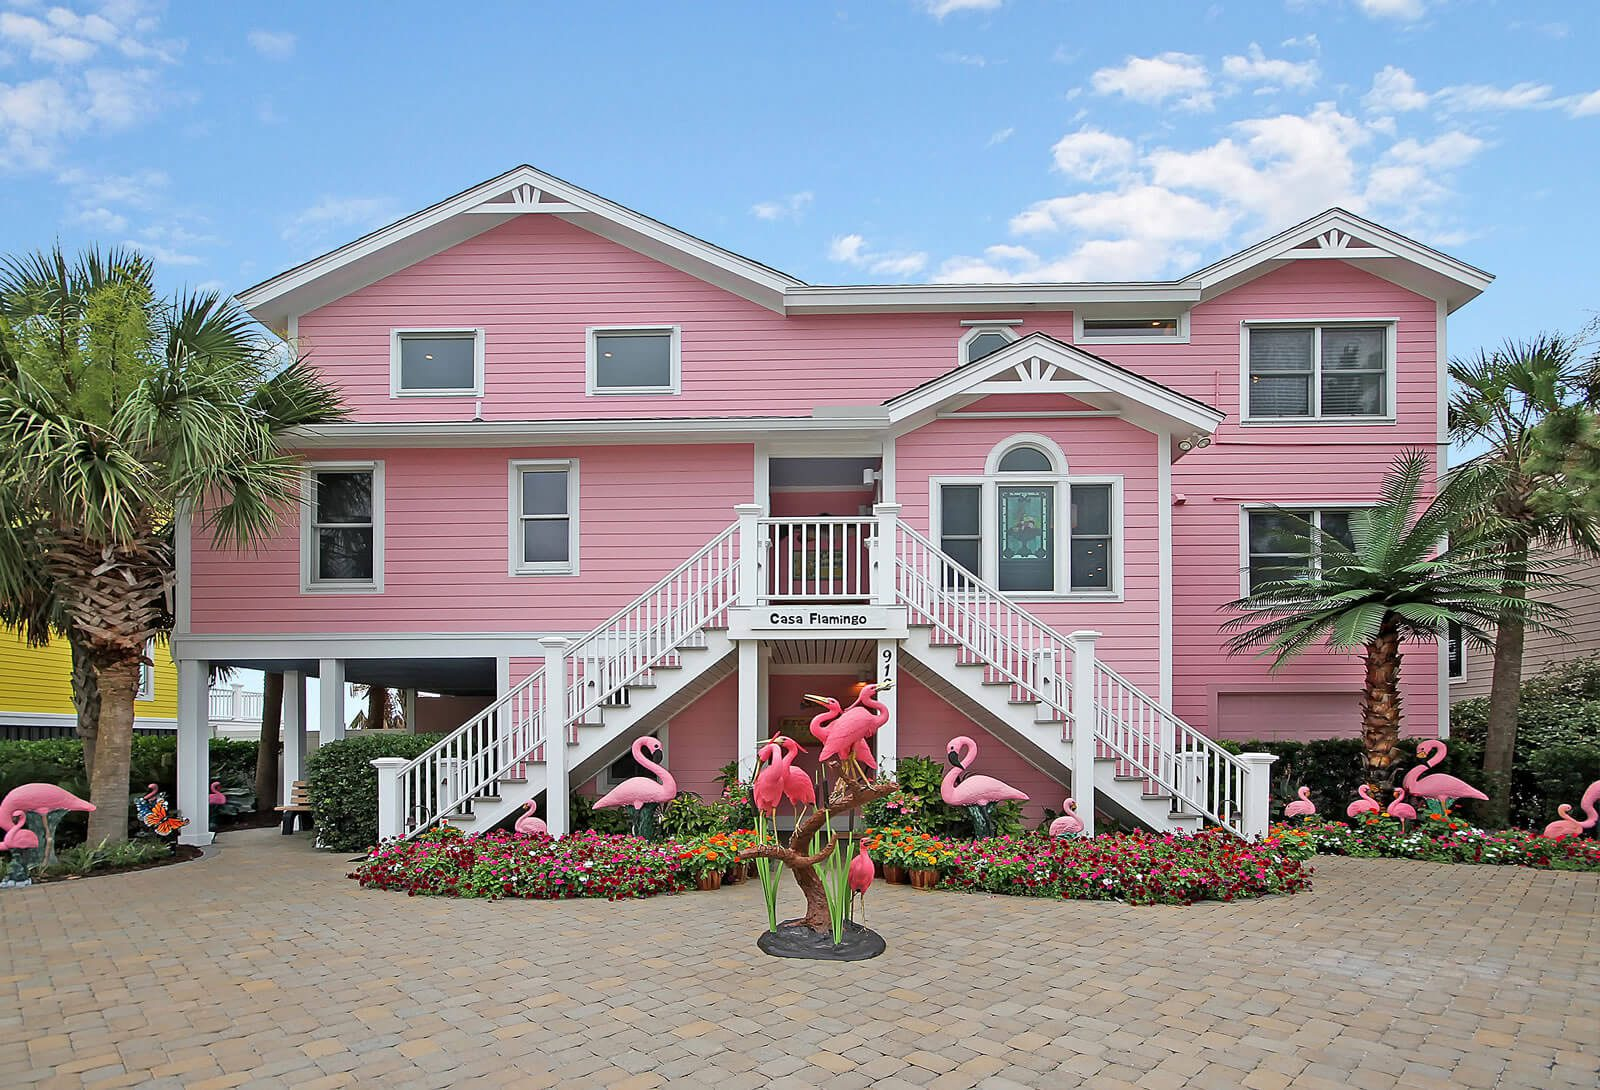 Casa Flamingo Front of Home - Isle of Palms, SC